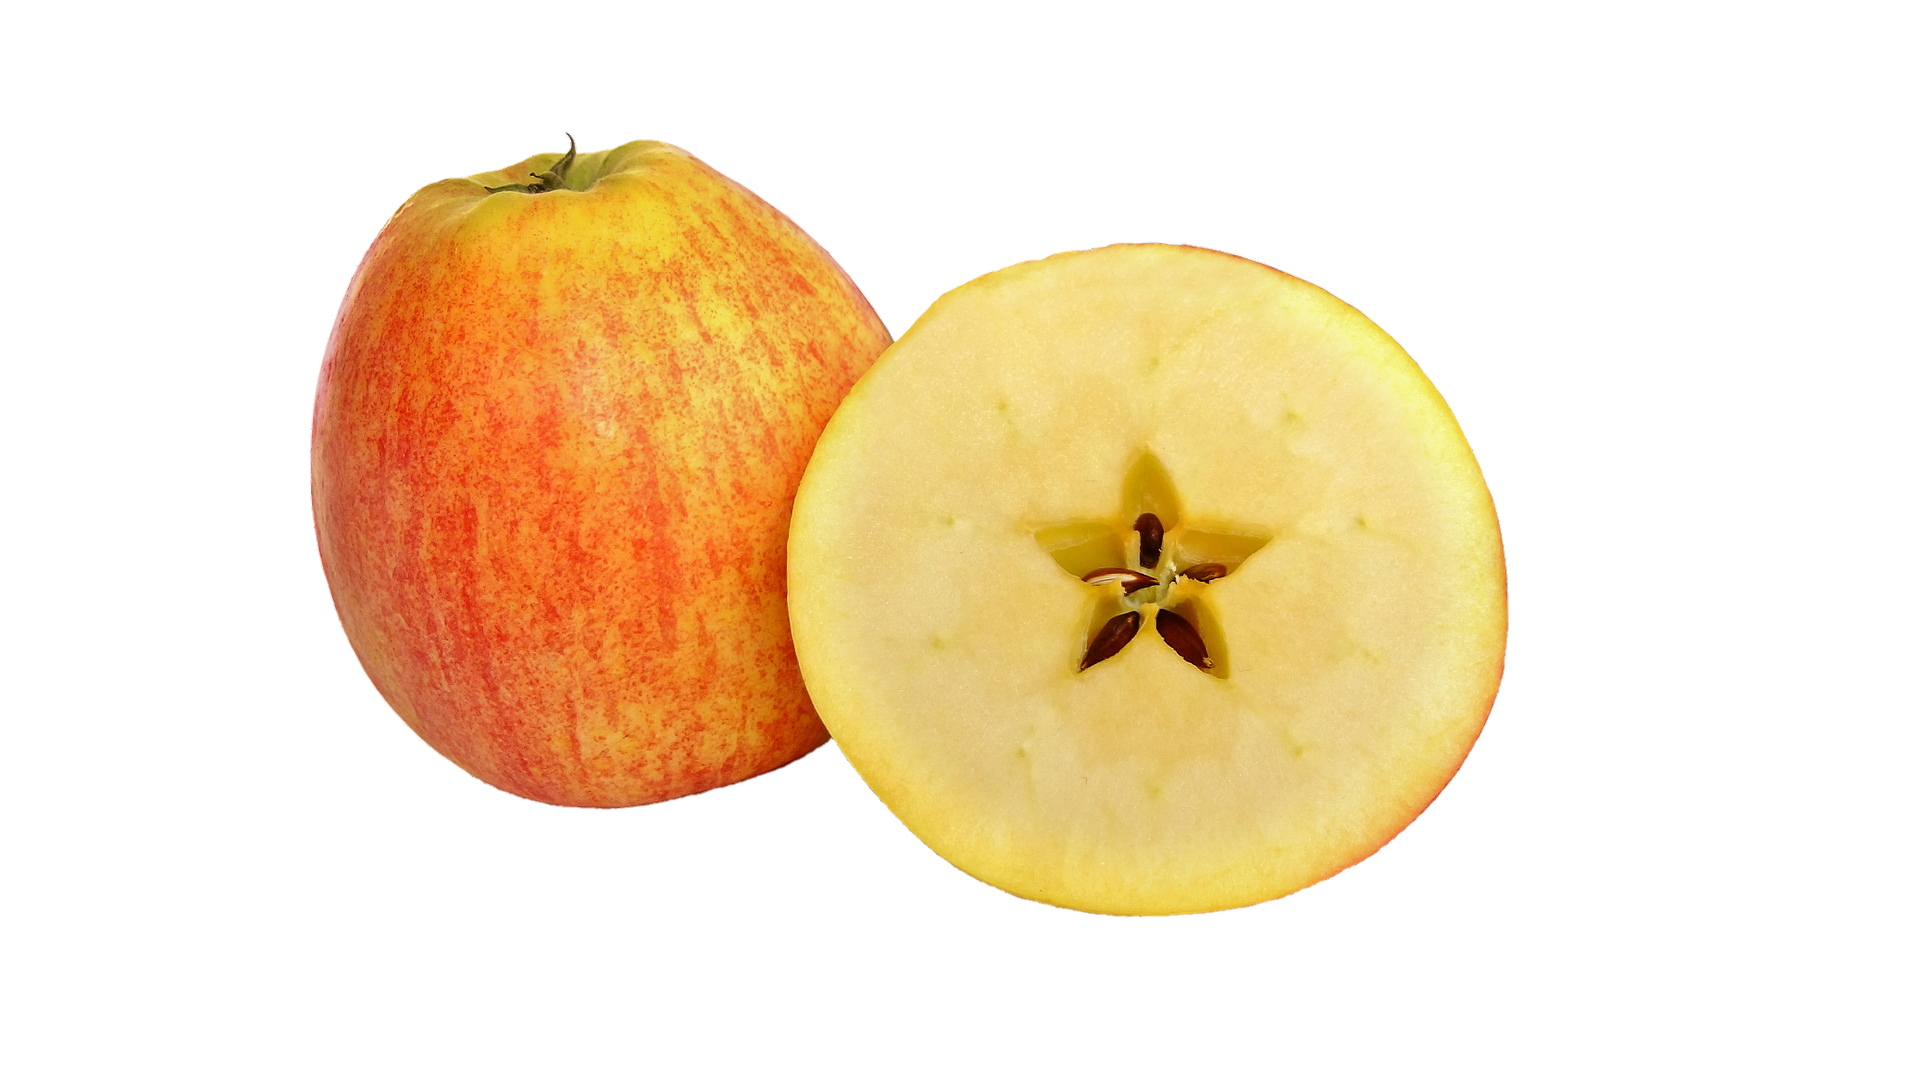 apple-2634494_1920.png